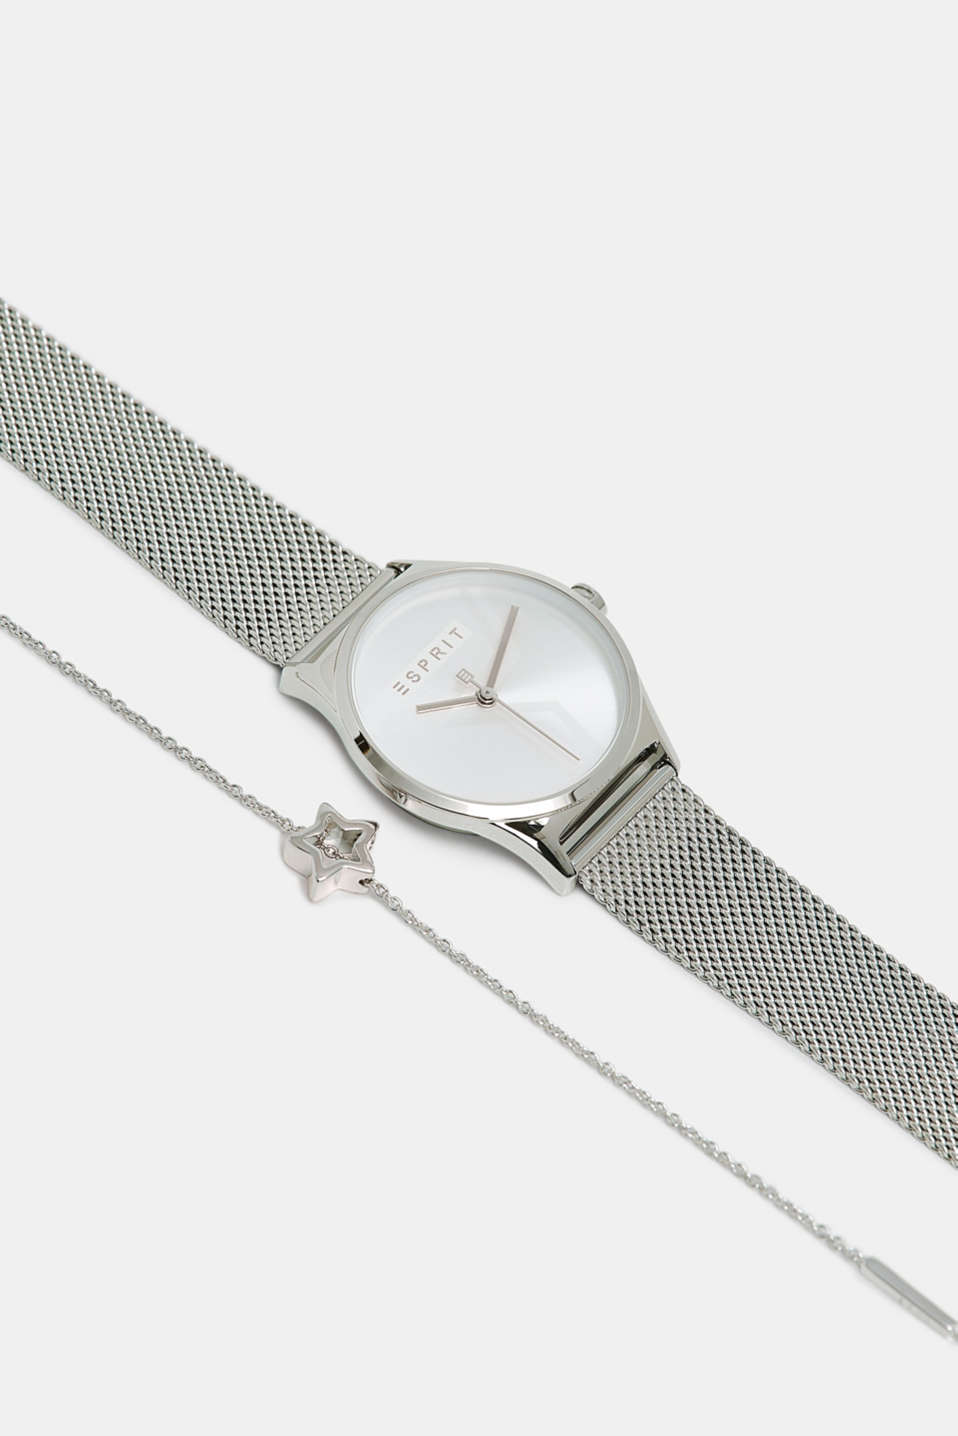 Esprit - Watch and bracelet set, in stainless steel